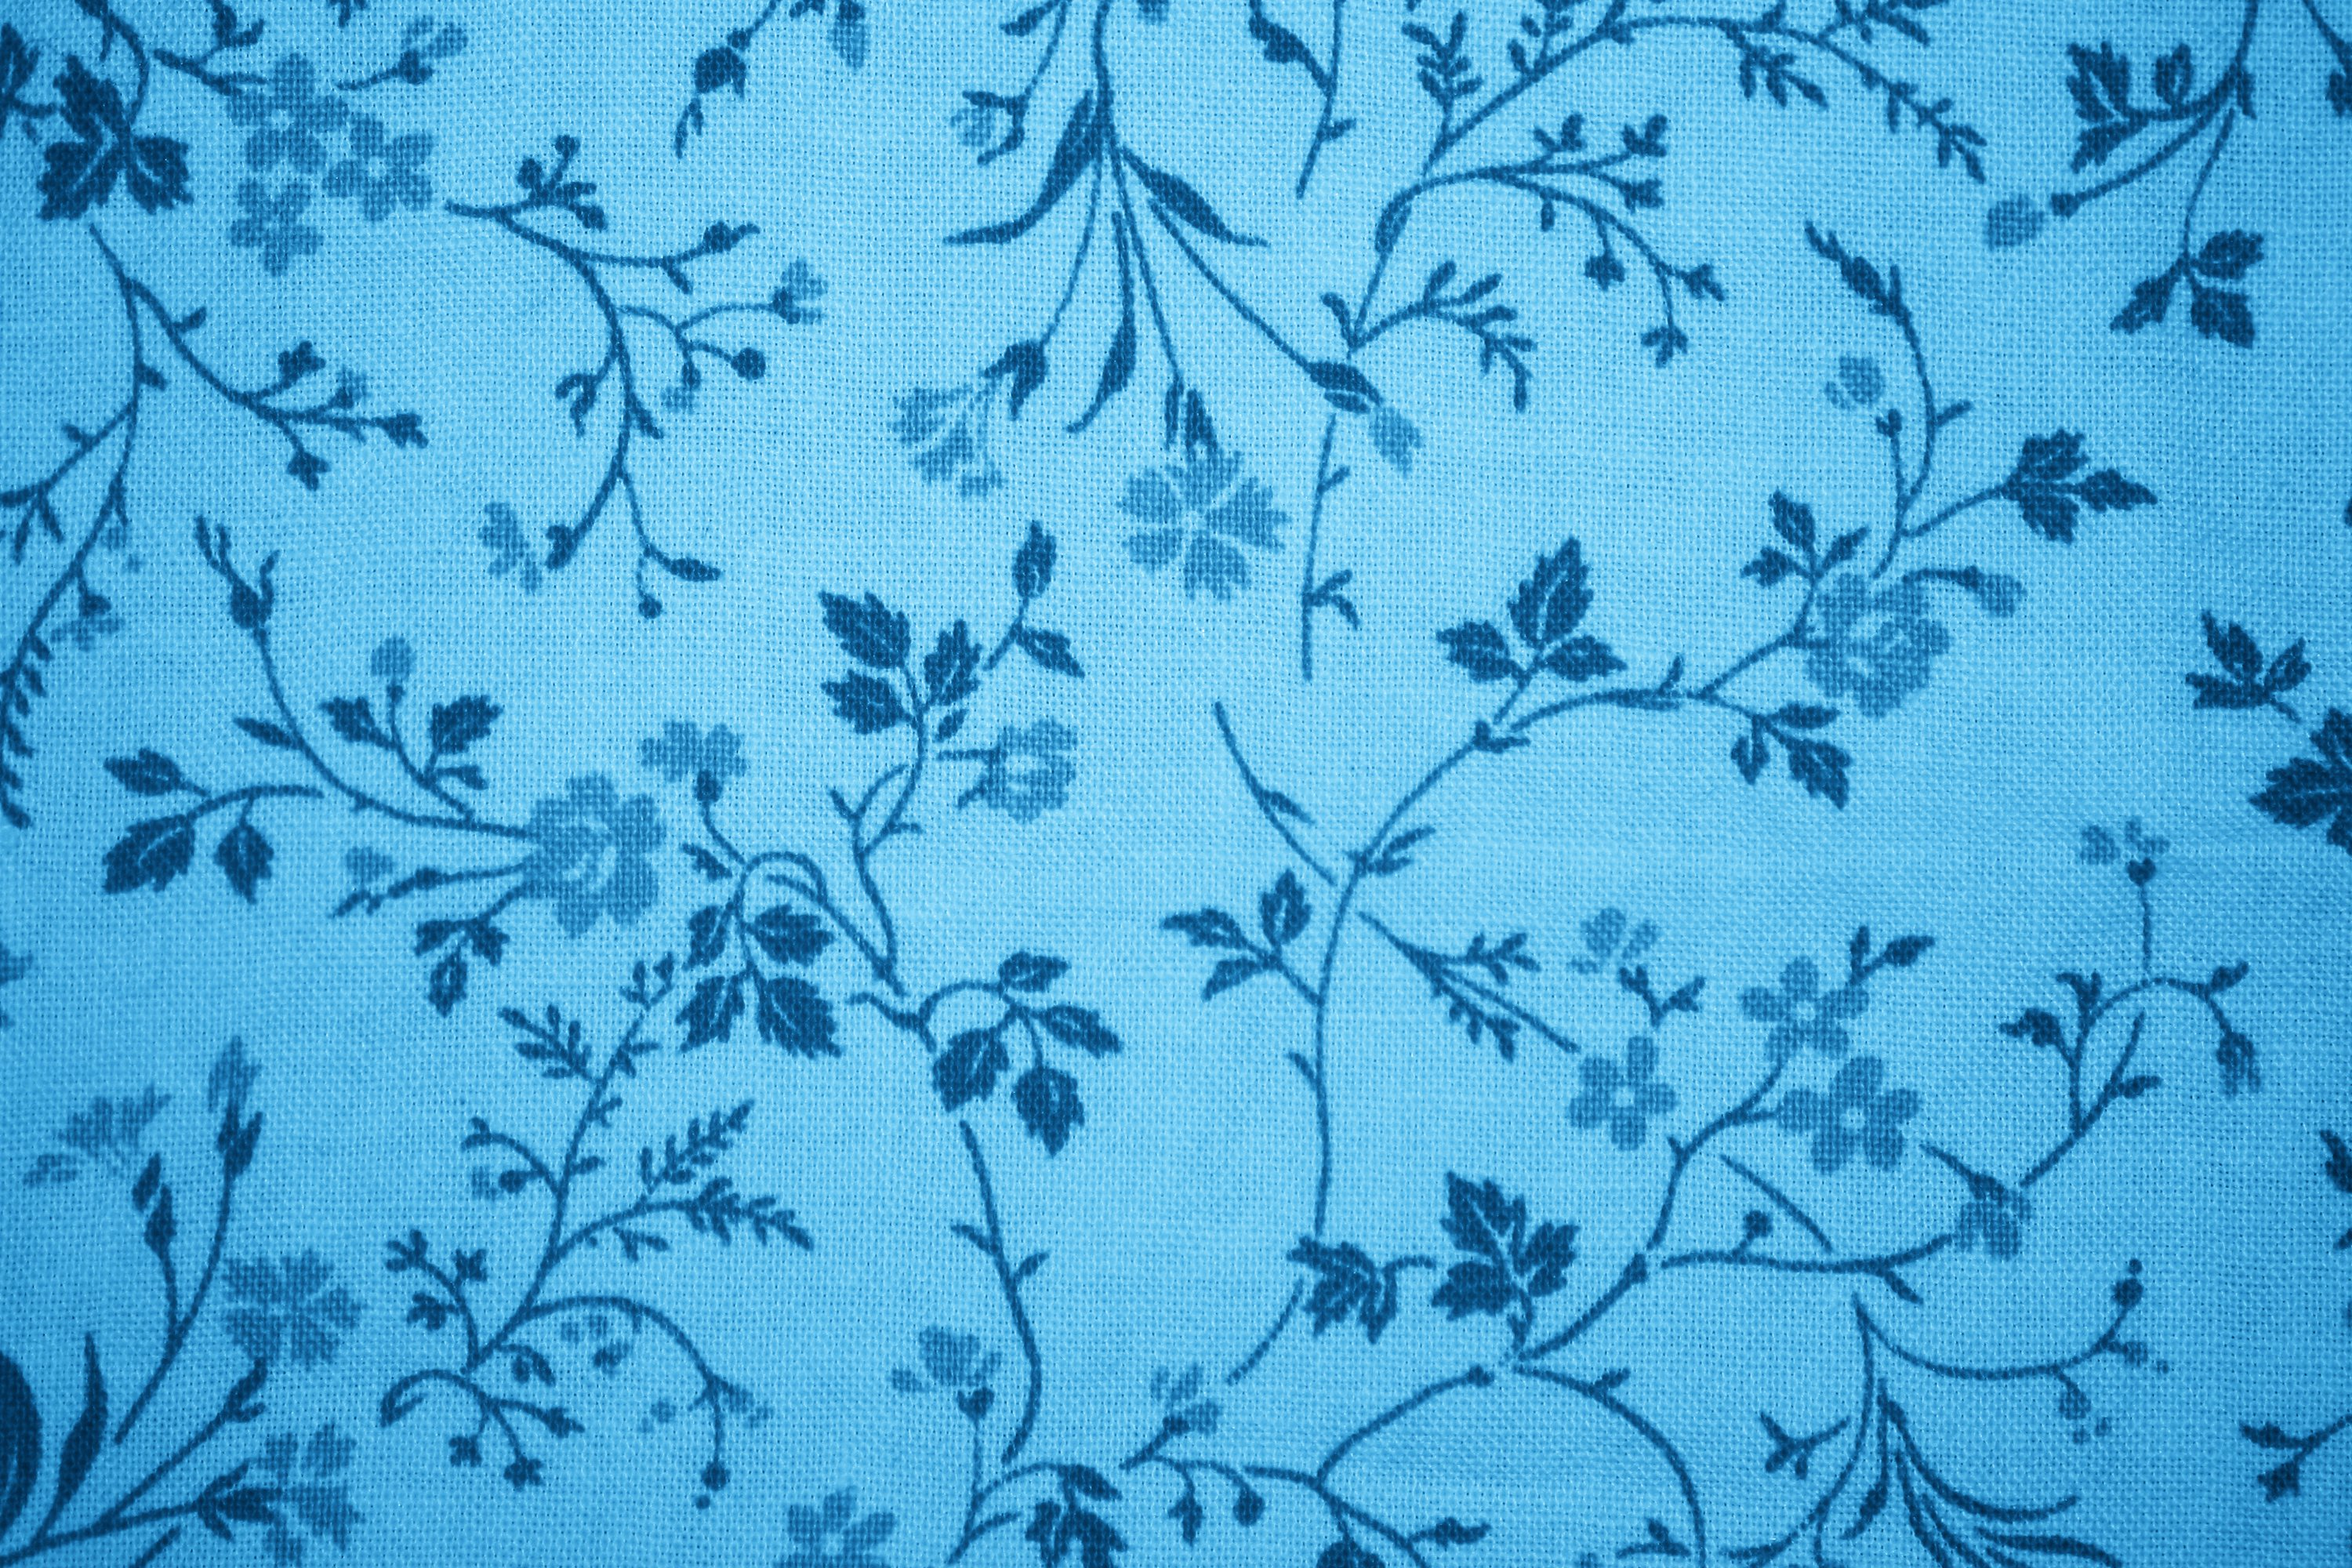 Sky Blue Floral Print Fabric Texture Picture Free Photograph